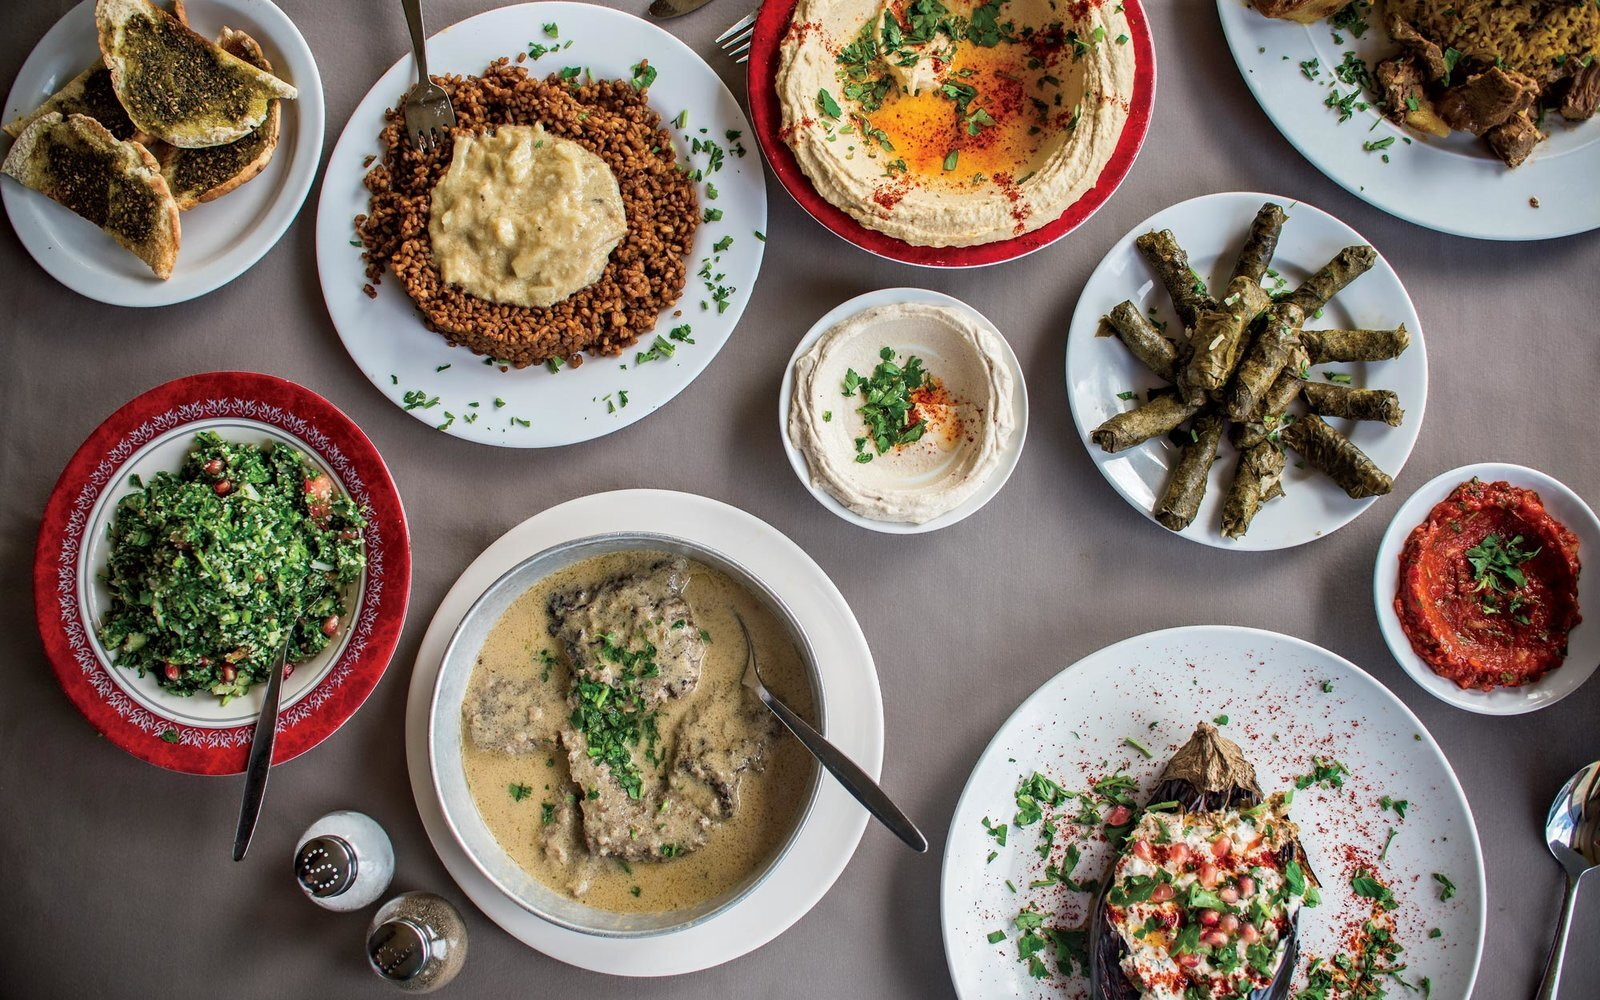 israeli food tour - INFORMATION COMING SOON